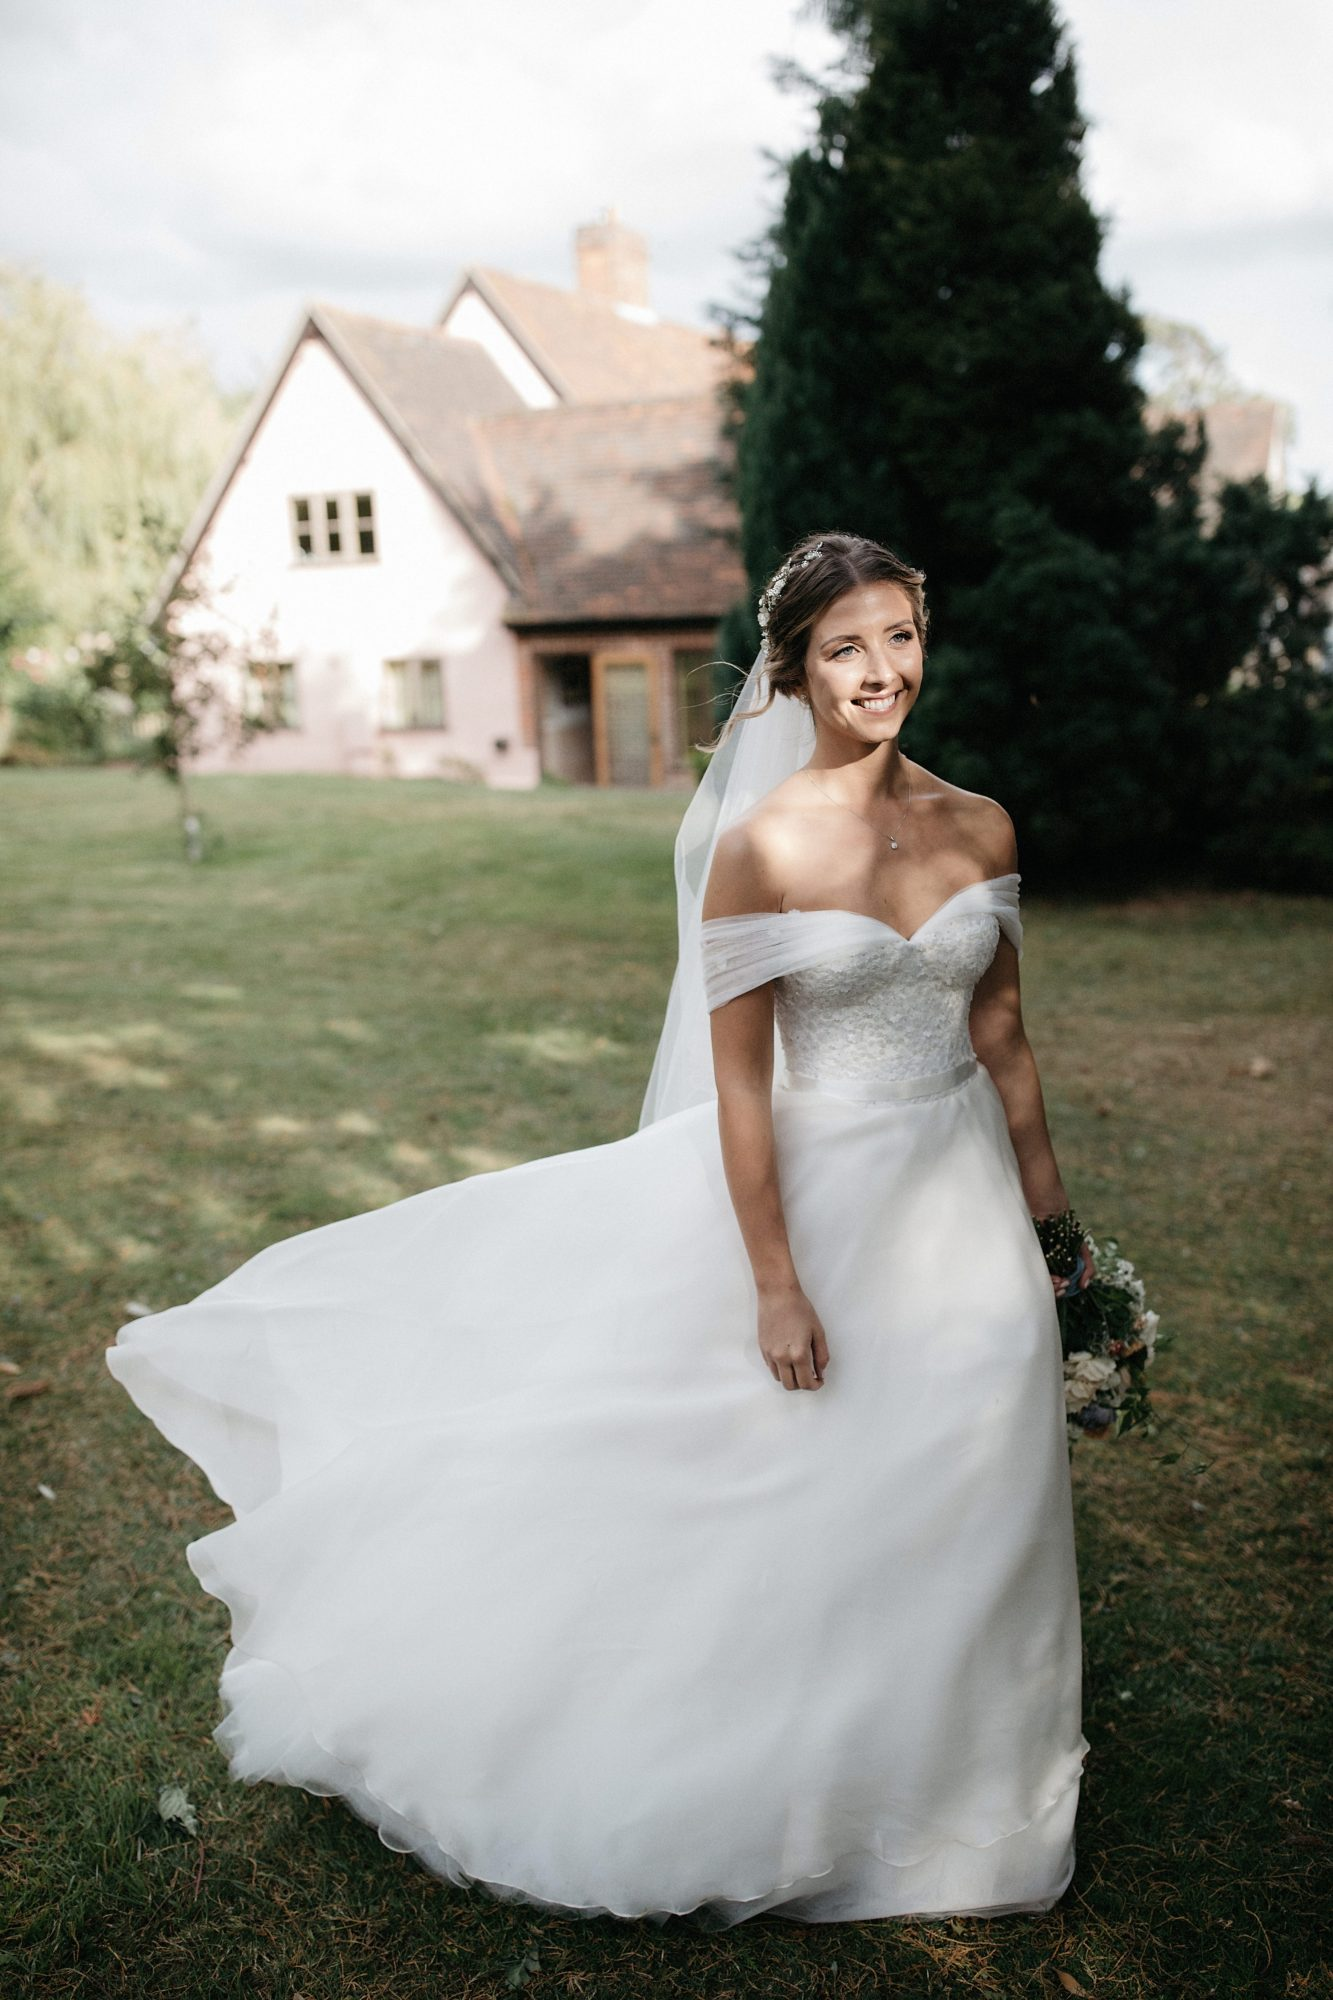 laurie lee wedding bride in dress and holding bouquet